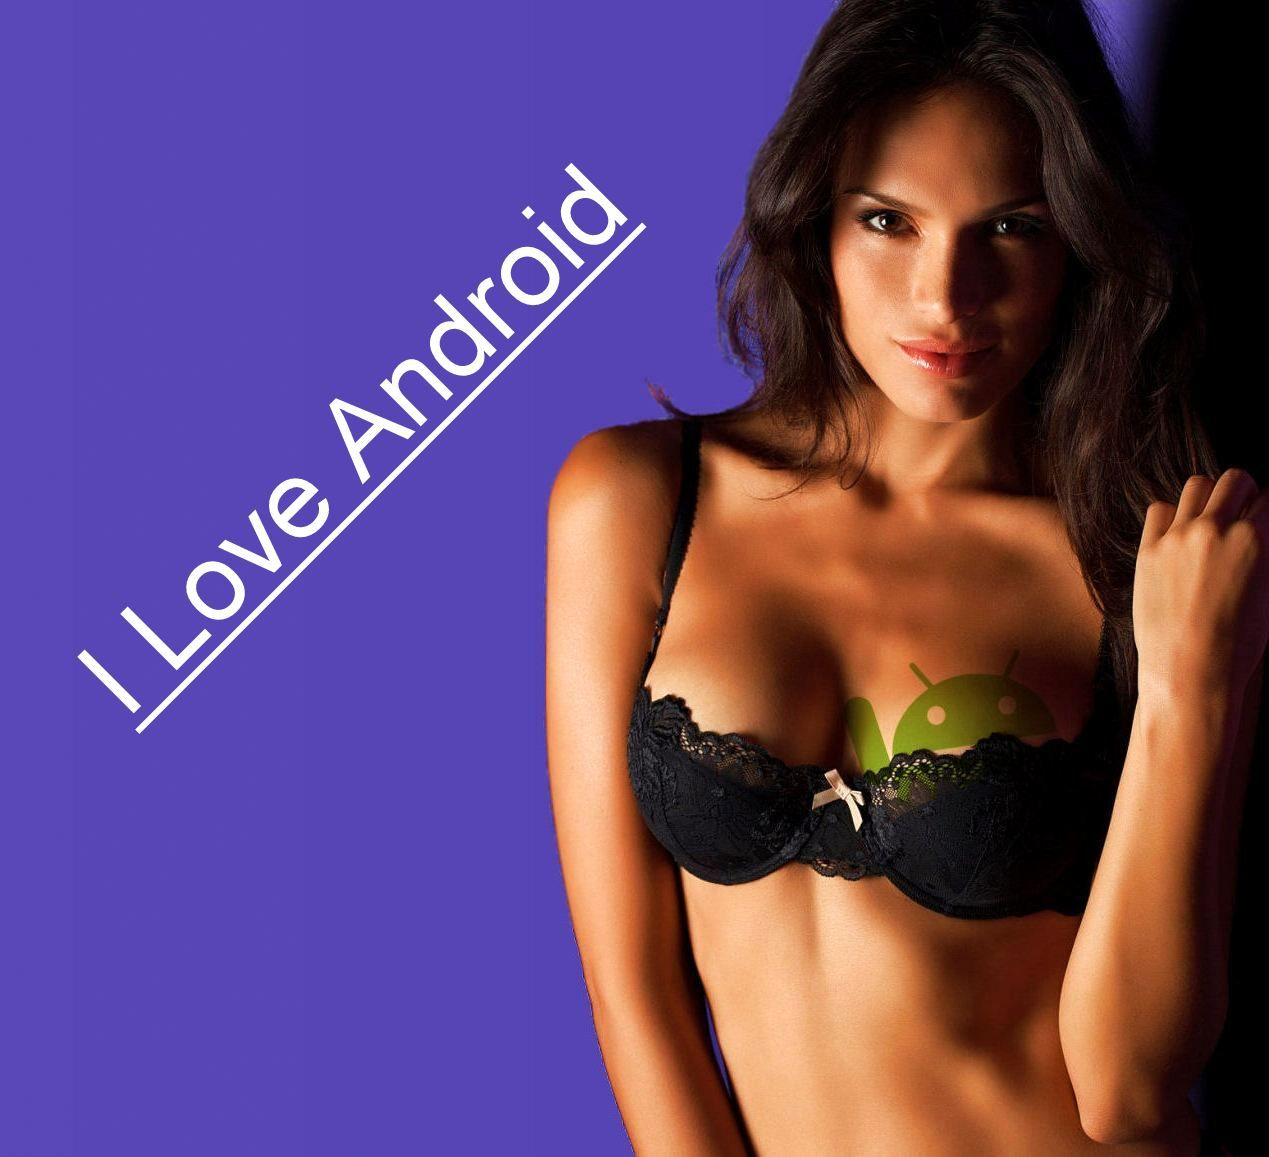 Hot Hd Android Wallpapers I Android Wallpaper